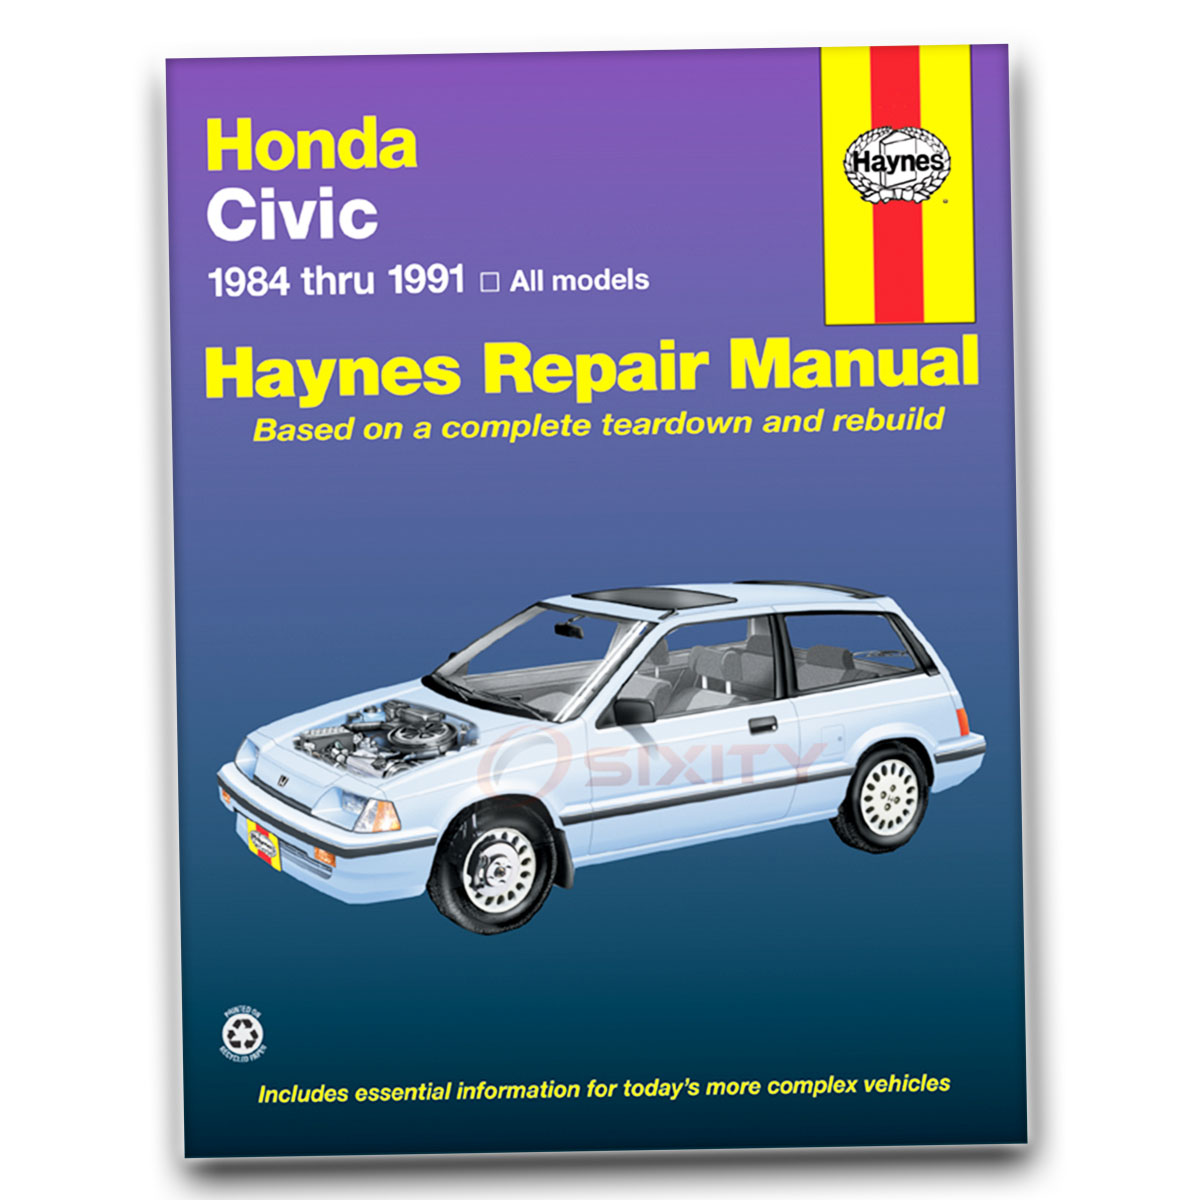 haynes repair manual for honda civic si wagovan base rt 4wd ex 1500 rh ebay  com 91 Honda Civic LX Sedan 91 Honda CRX Mugen Kit